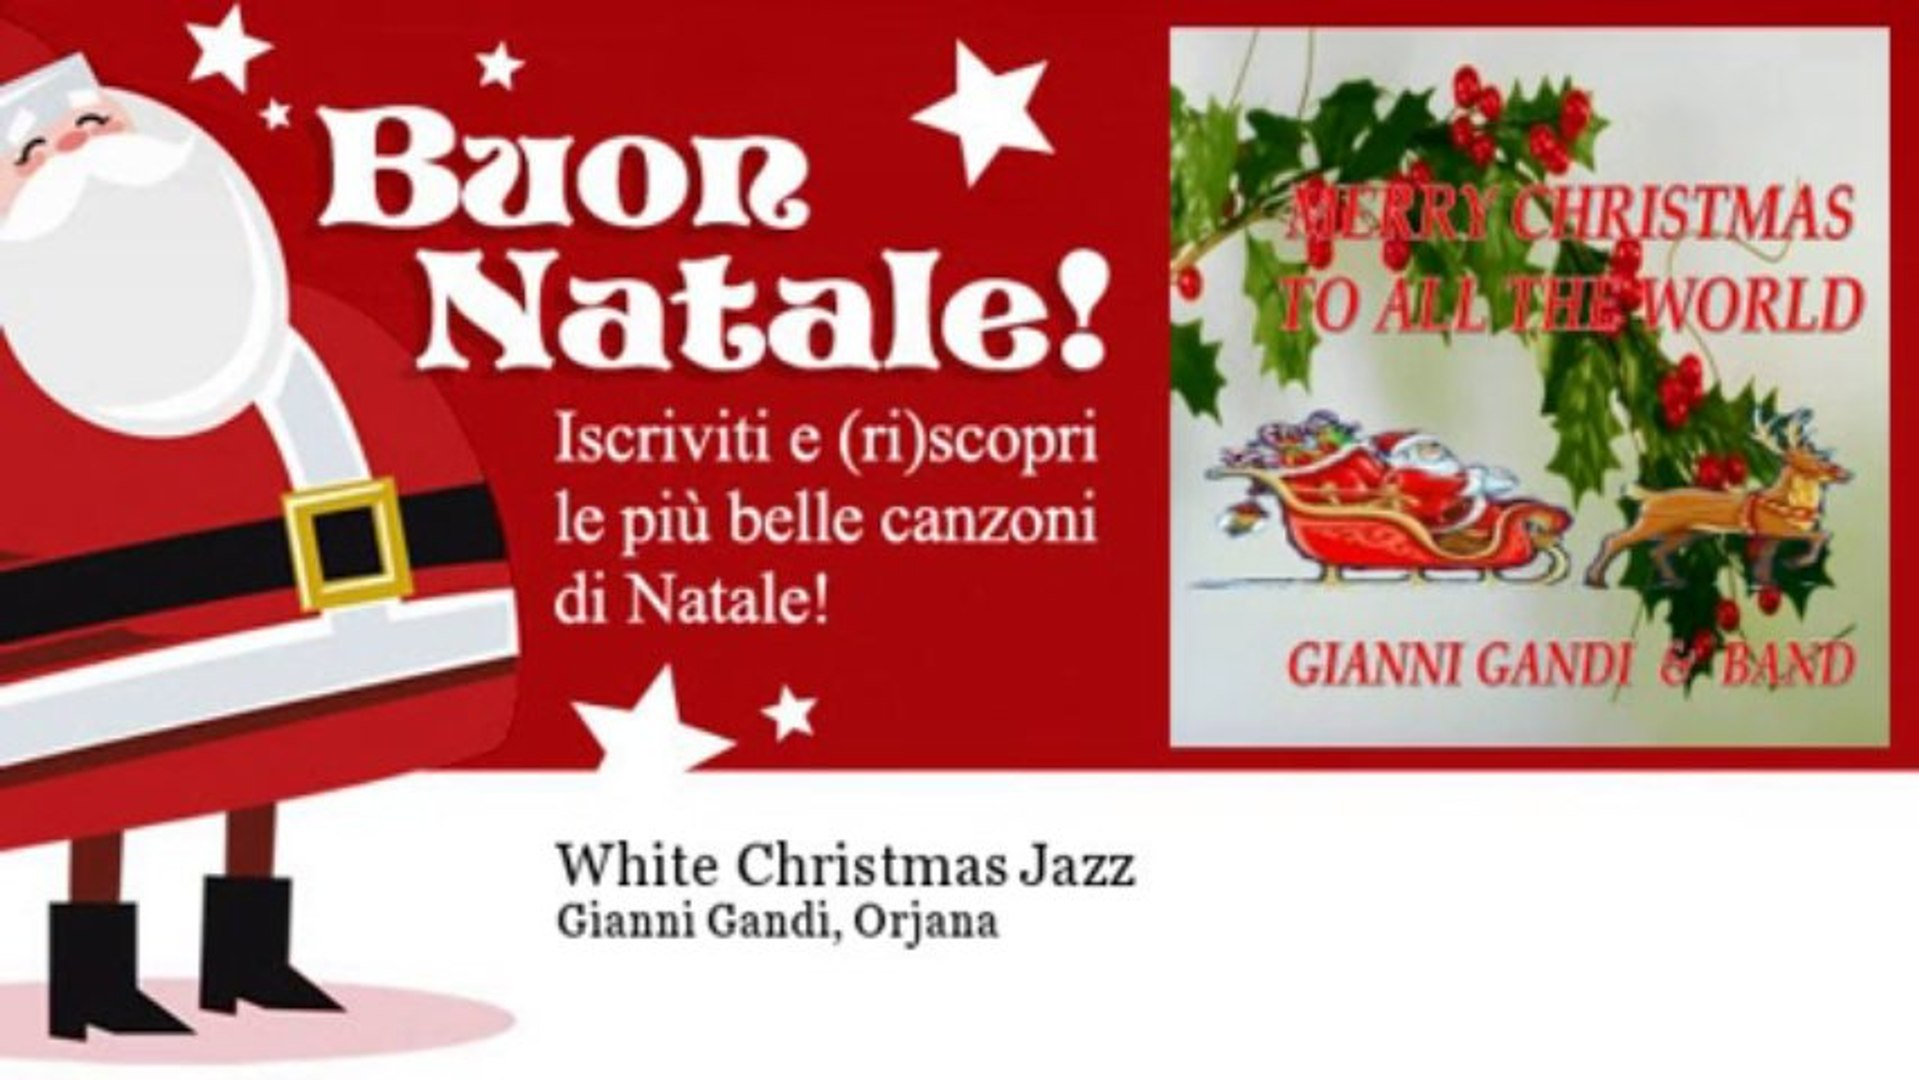 Gianni Gandi, Orjana - White Christmas Jazz